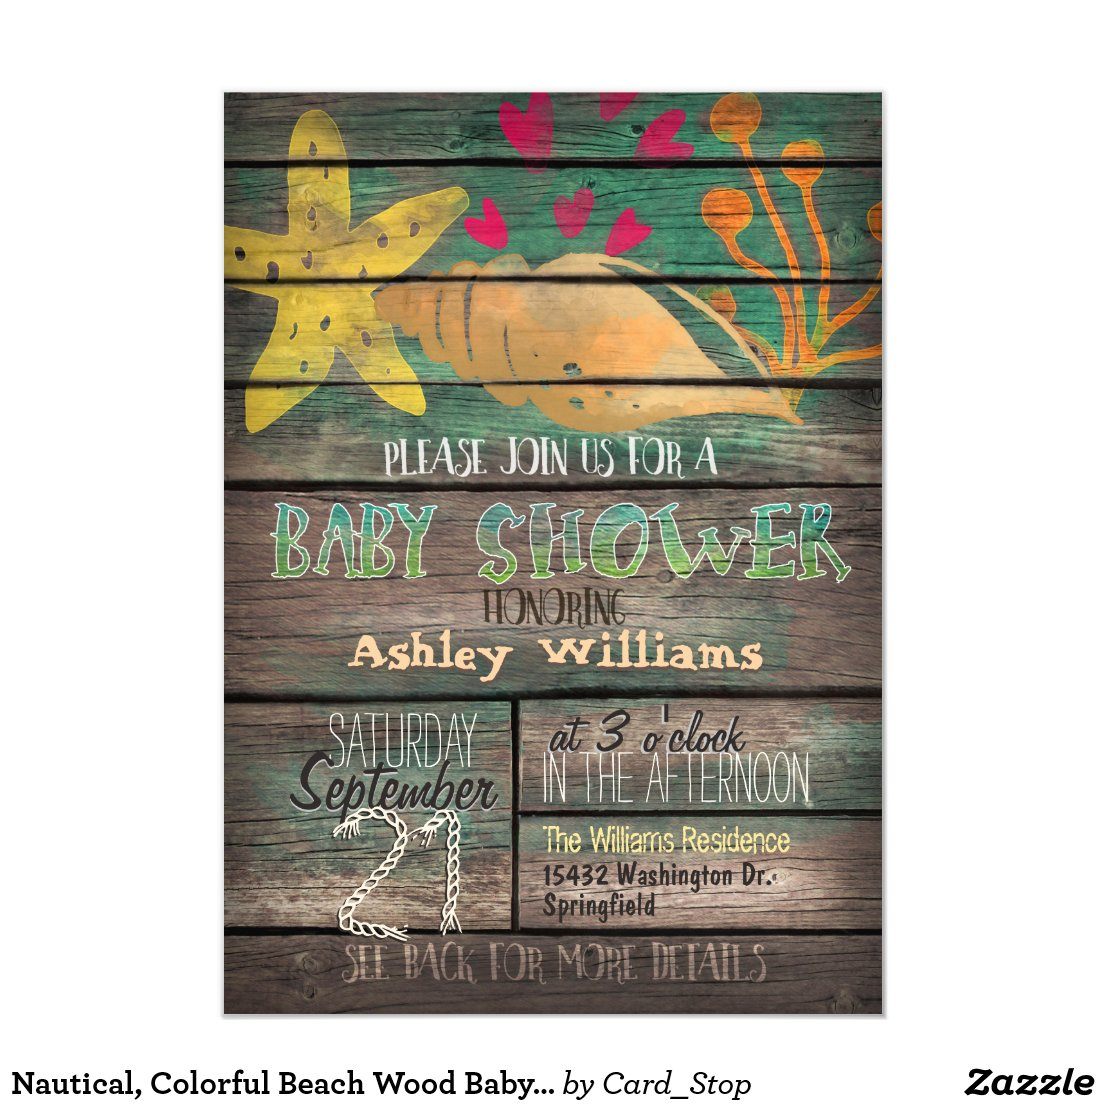 Nautical, Colorful Beach Wood Baby Shower Card